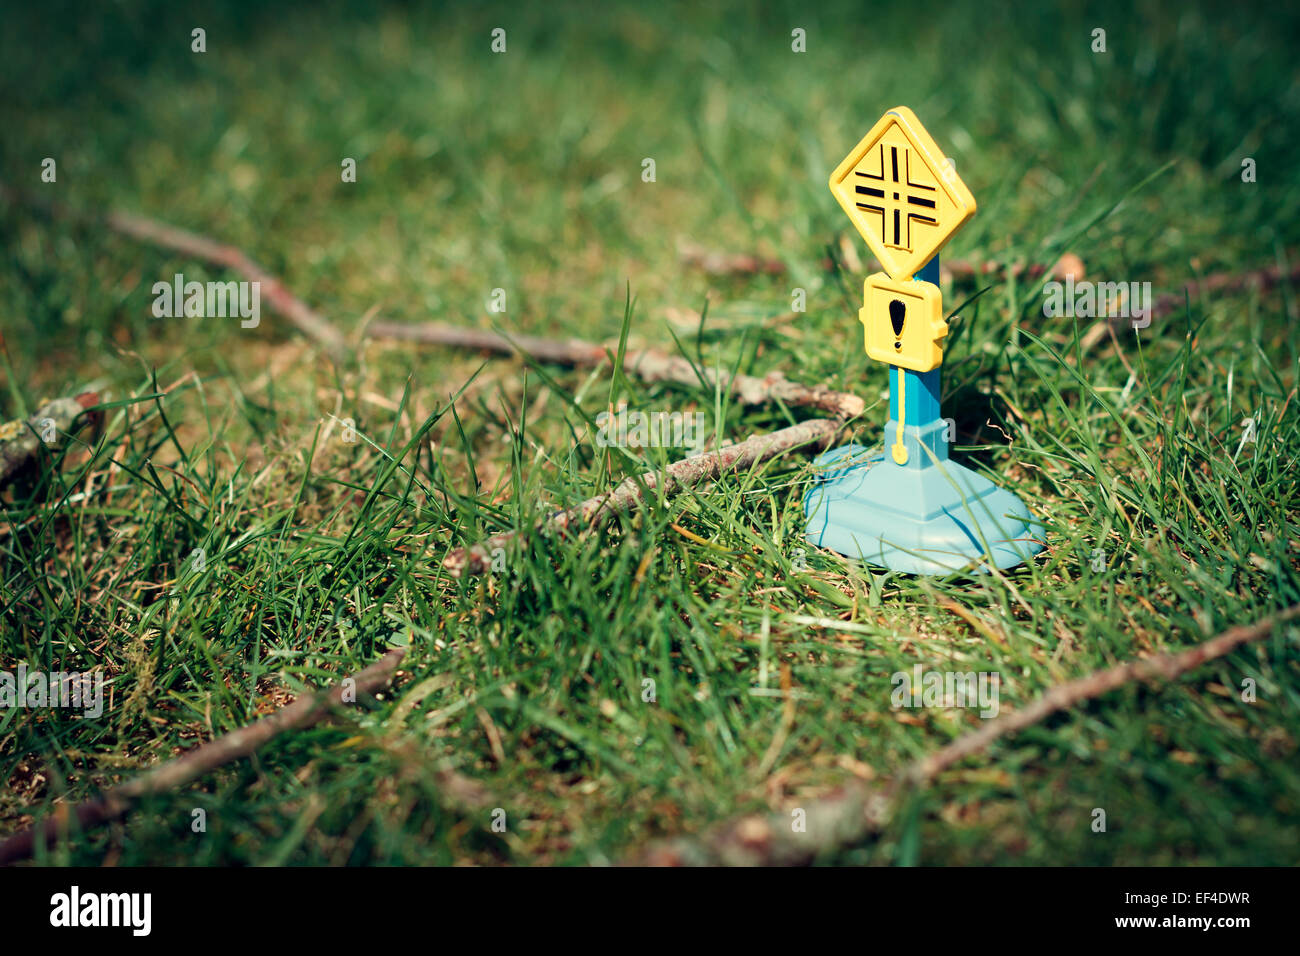 Panneau routier toy grass macro photographie Photo Stock